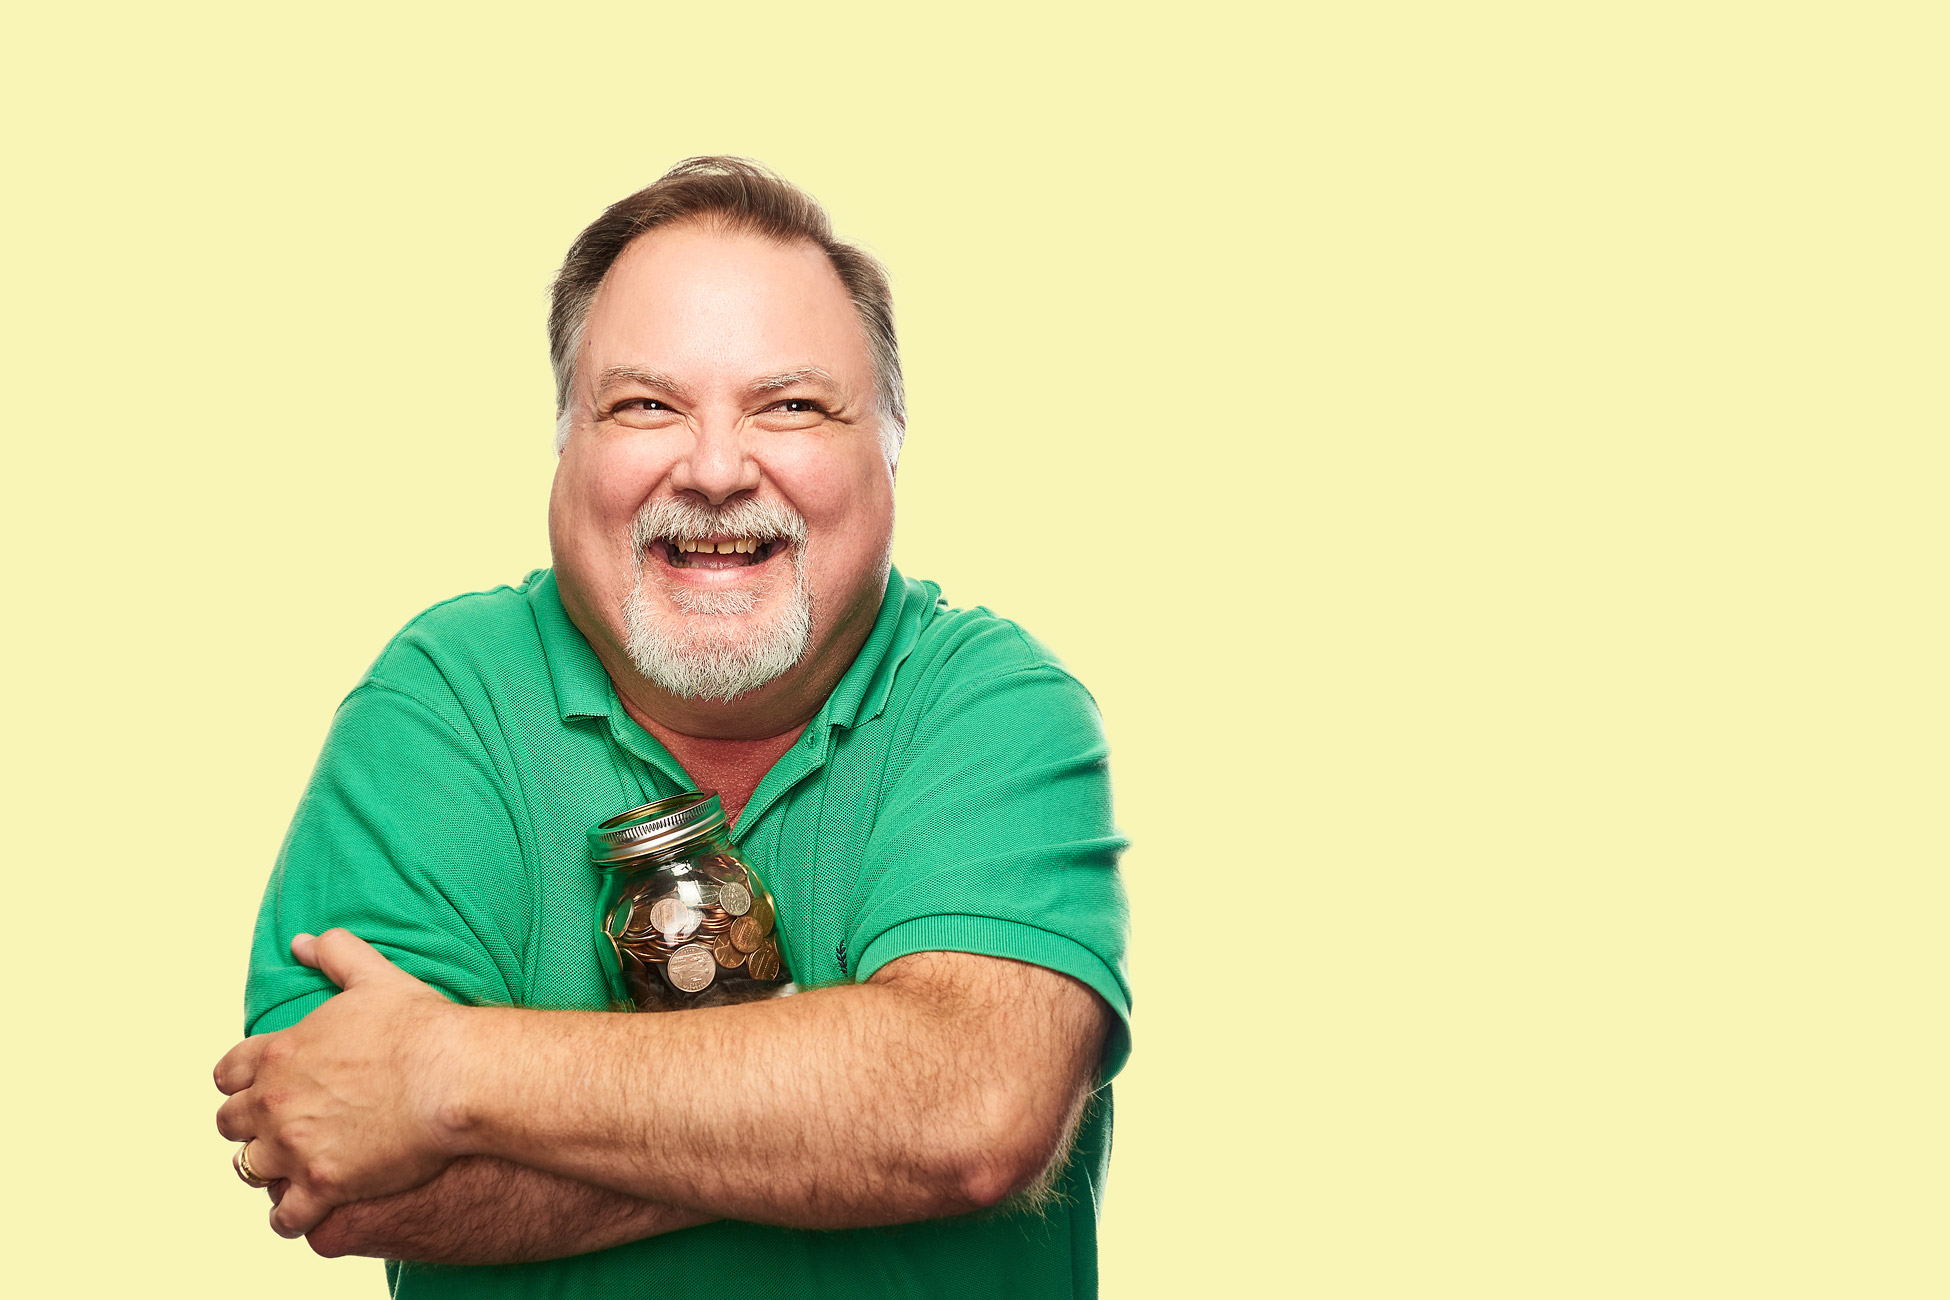 Man in green shirt  holding piggy bank on yellow background.